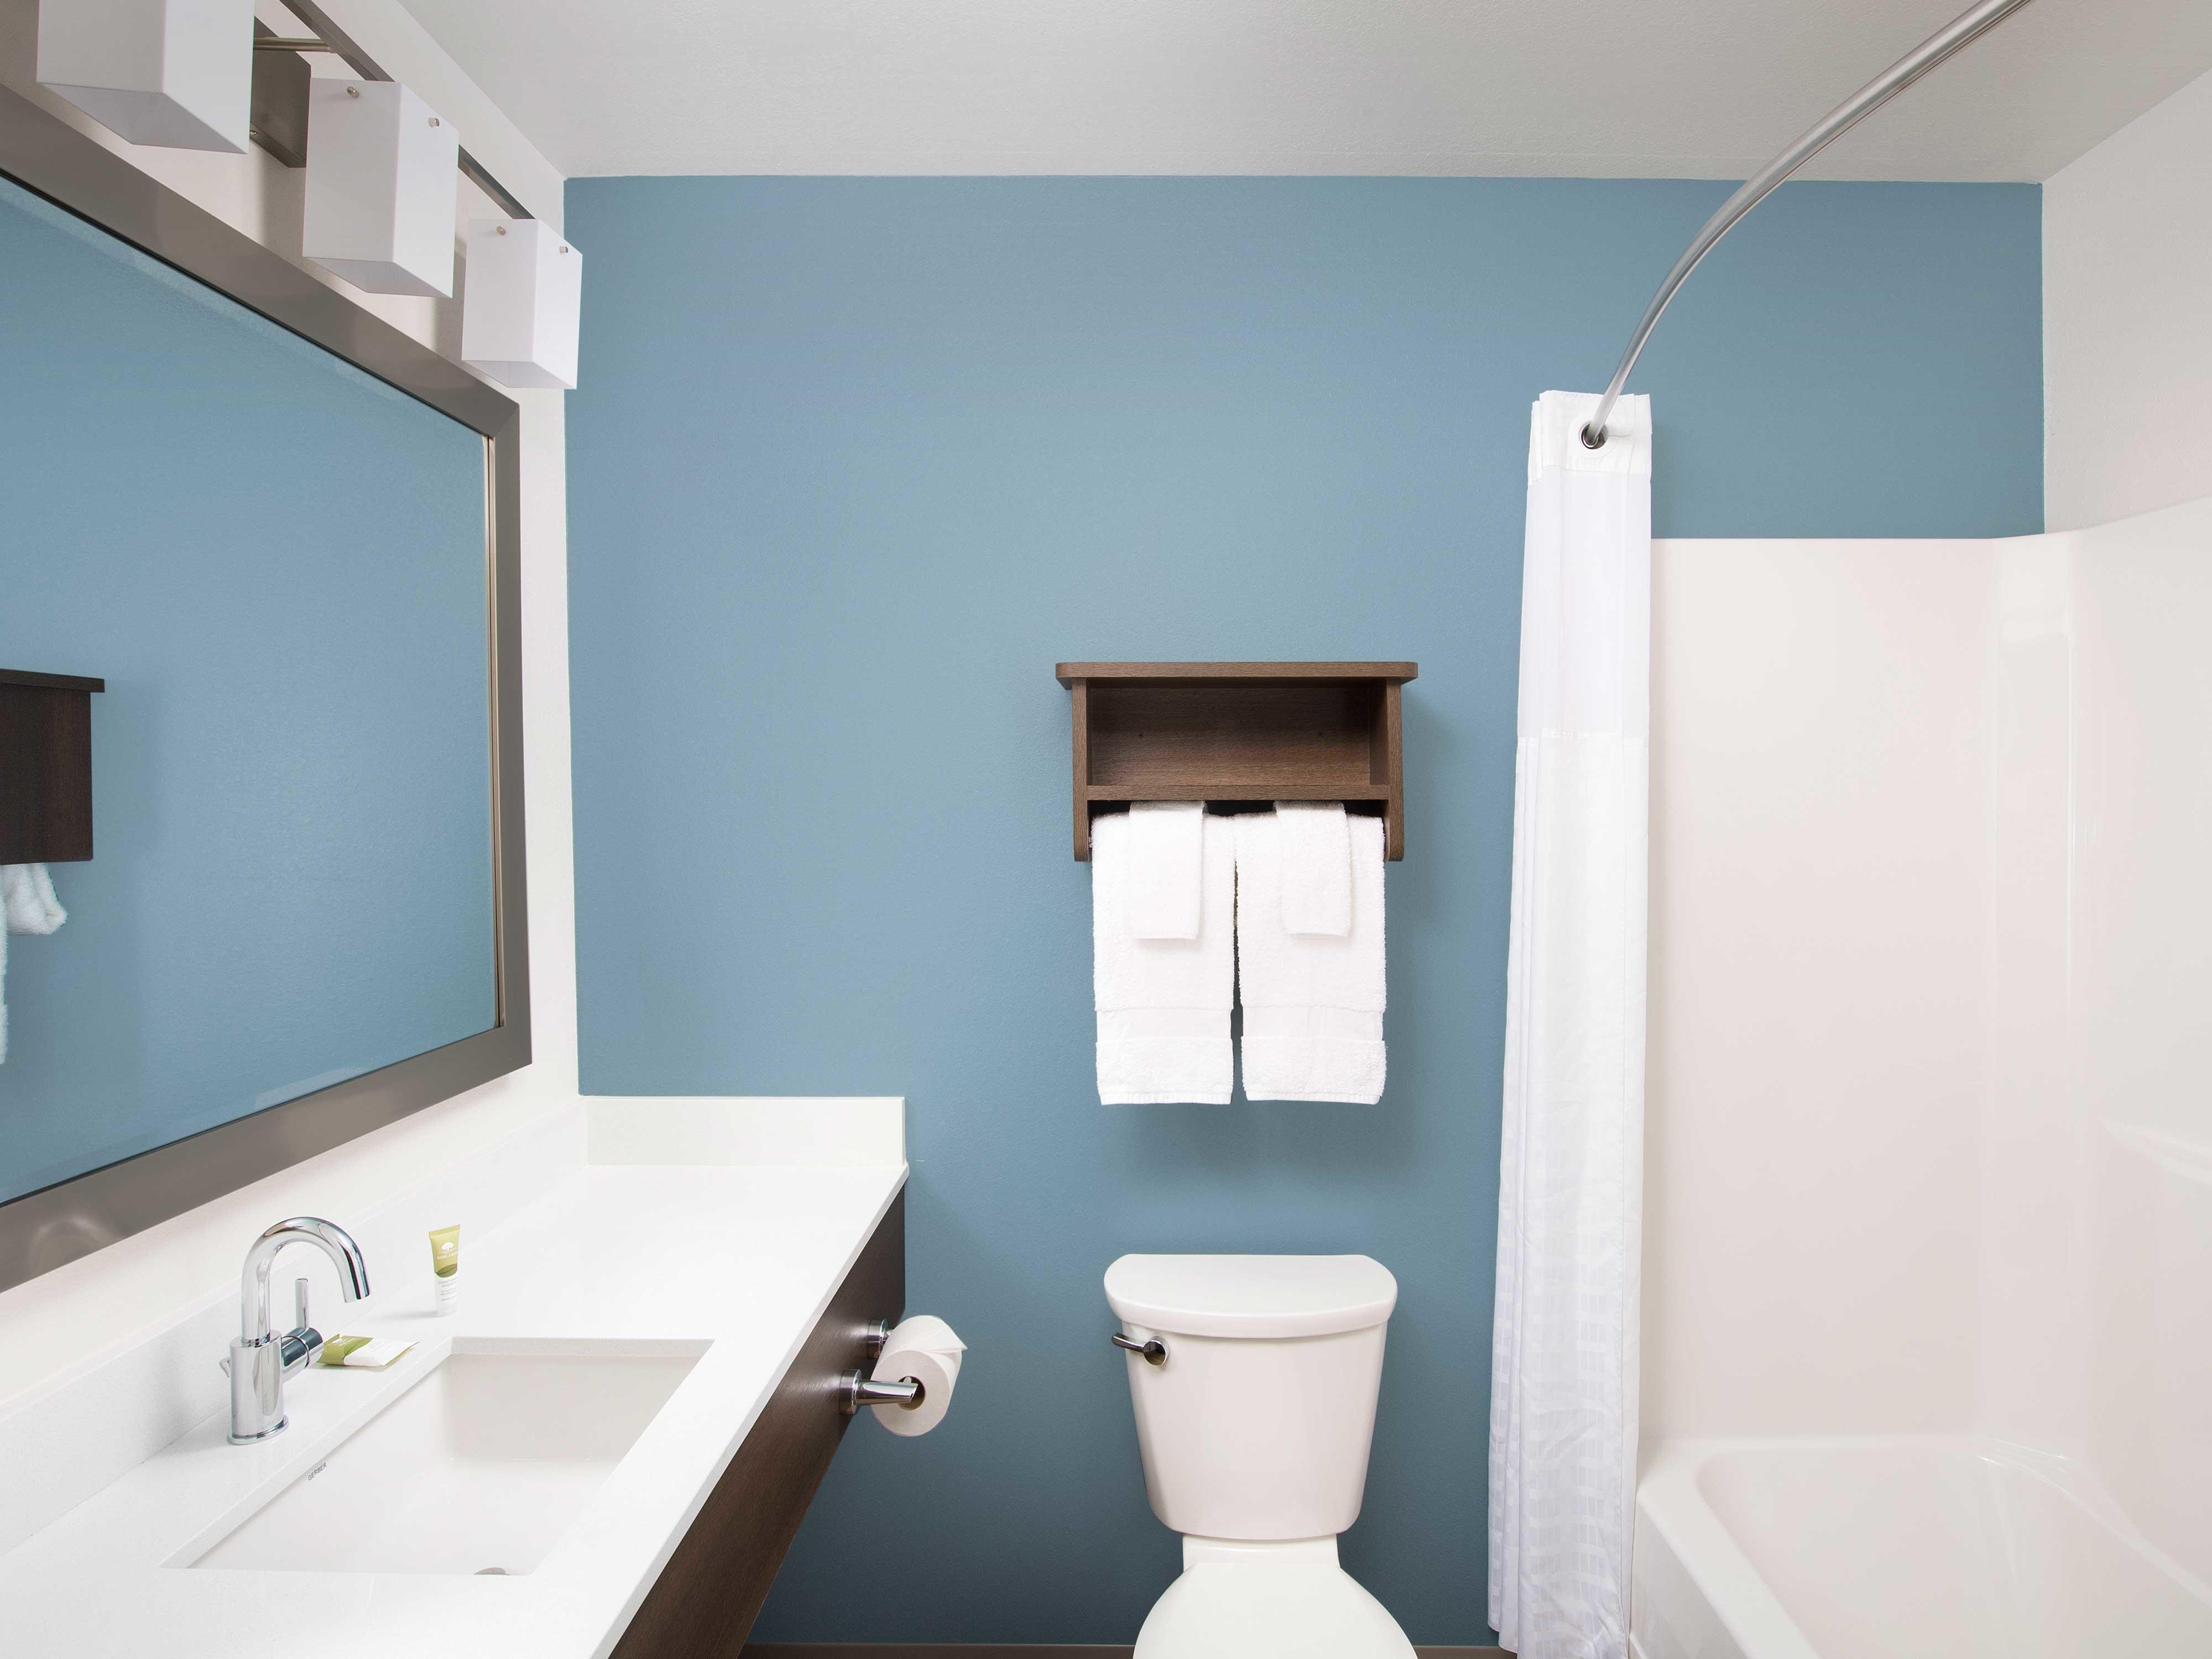 WoodSpring Suites Chicago Tinley Park in Tinley Park, IL